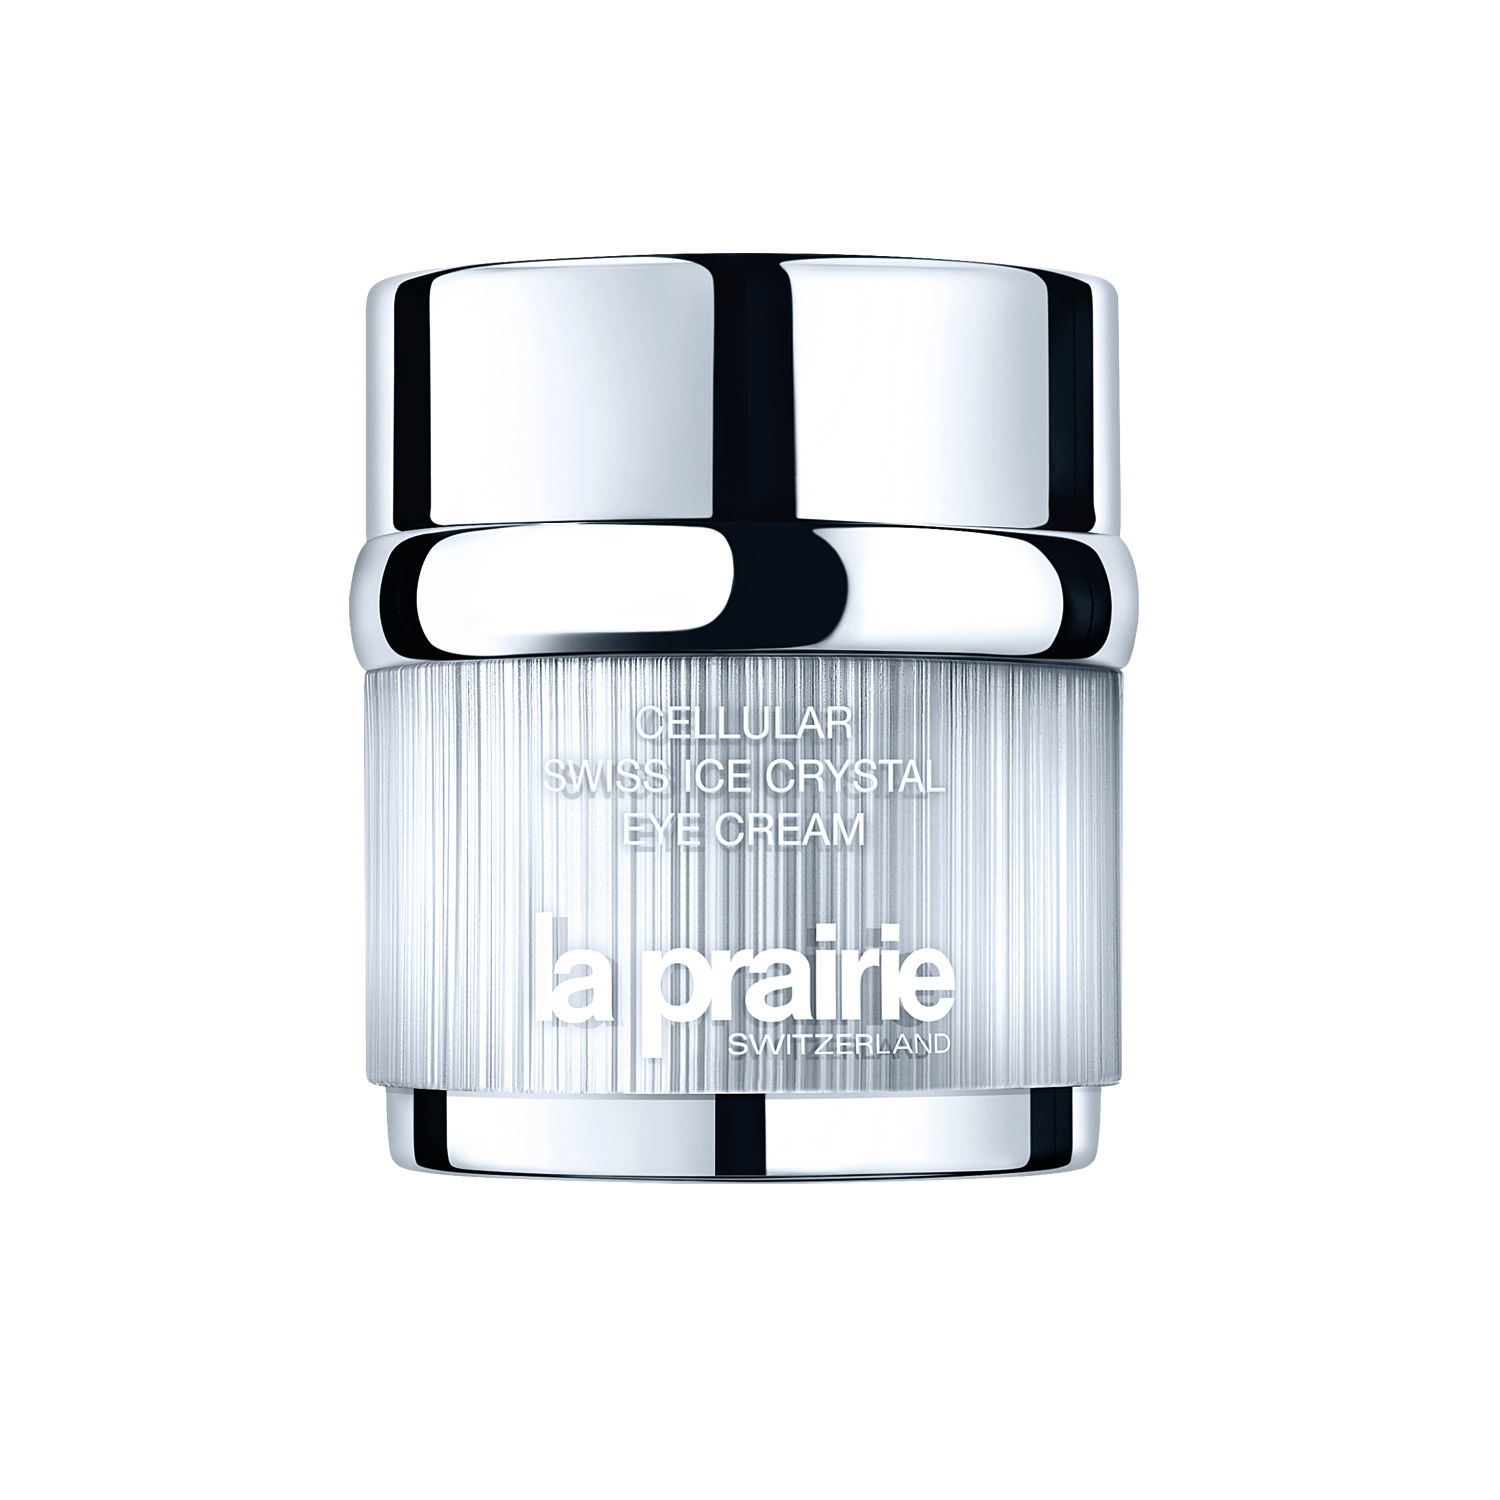 la prairie cellular swiss ice crystal eye cream 20 ml preisvergleich augencreme g nstig. Black Bedroom Furniture Sets. Home Design Ideas